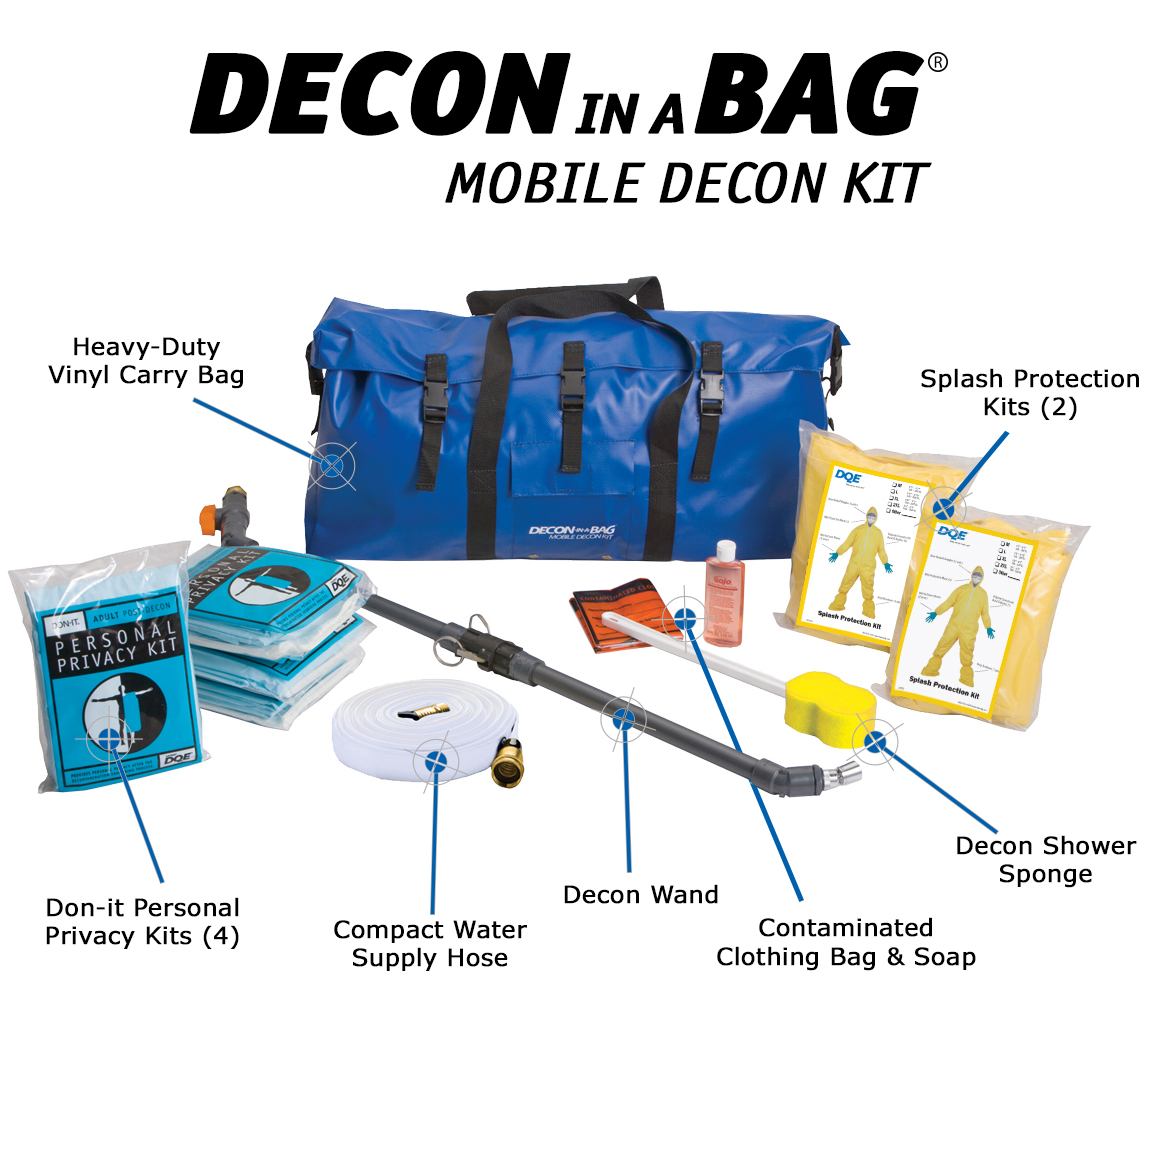 Decon in a Bag image